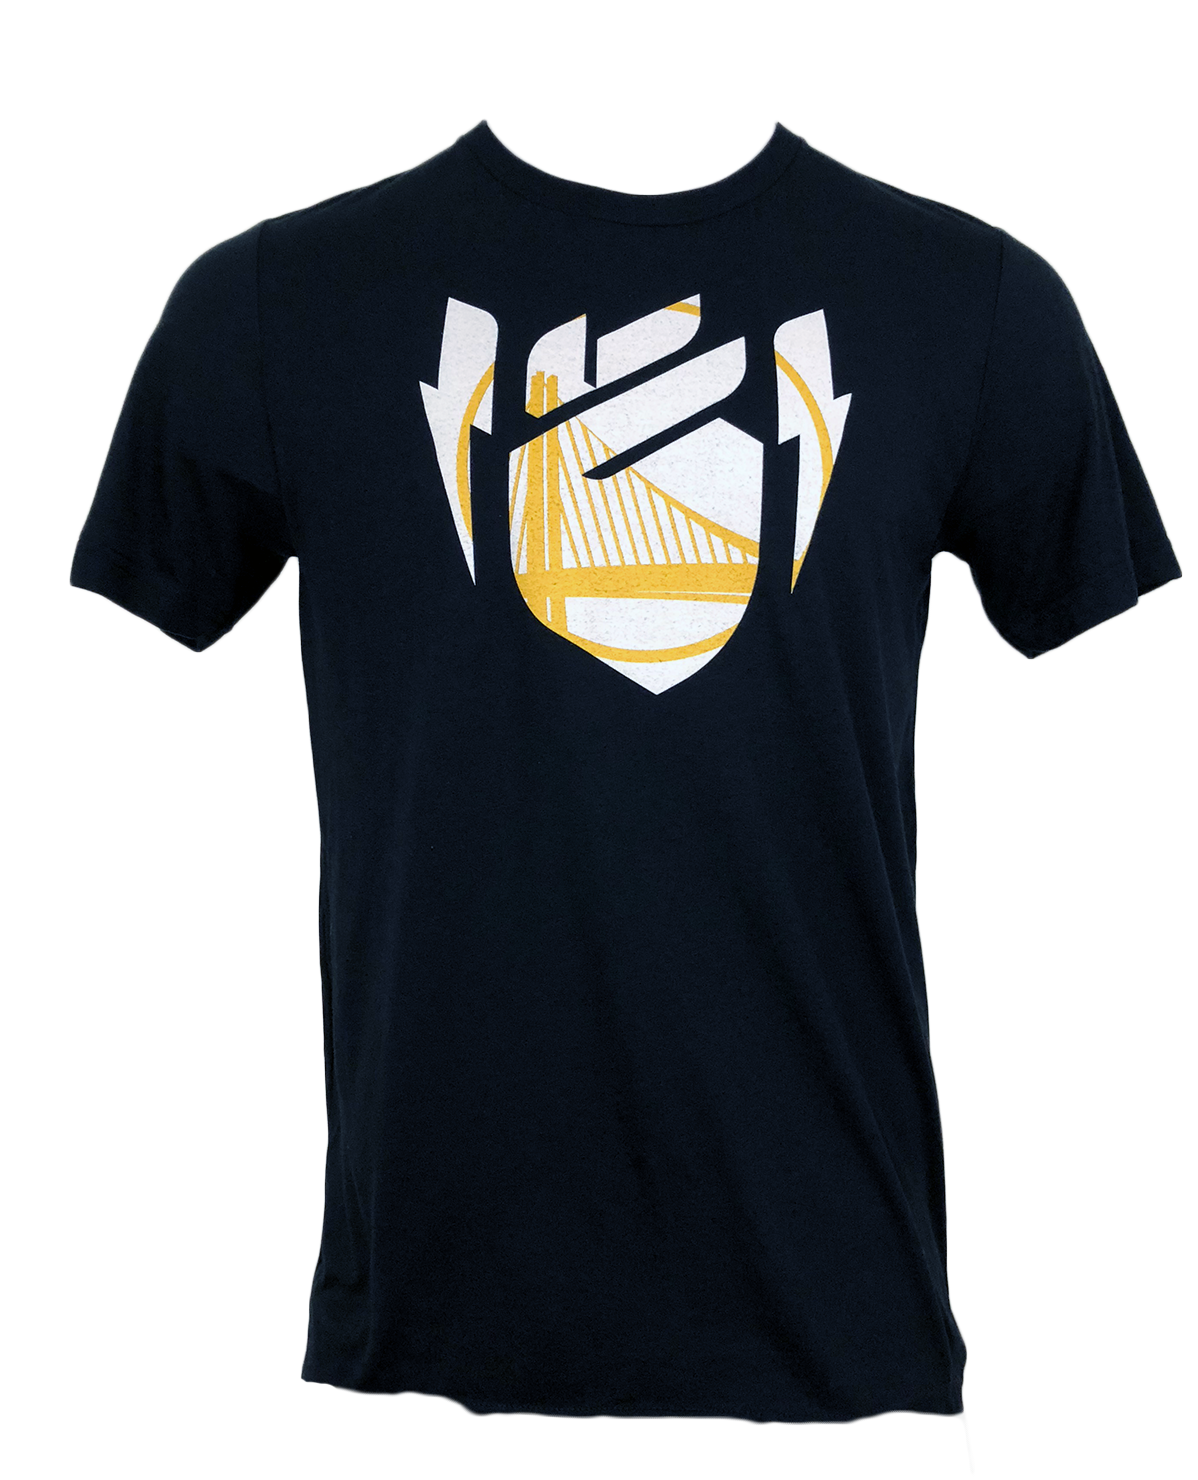 Dubs Bridge T-shirt Black